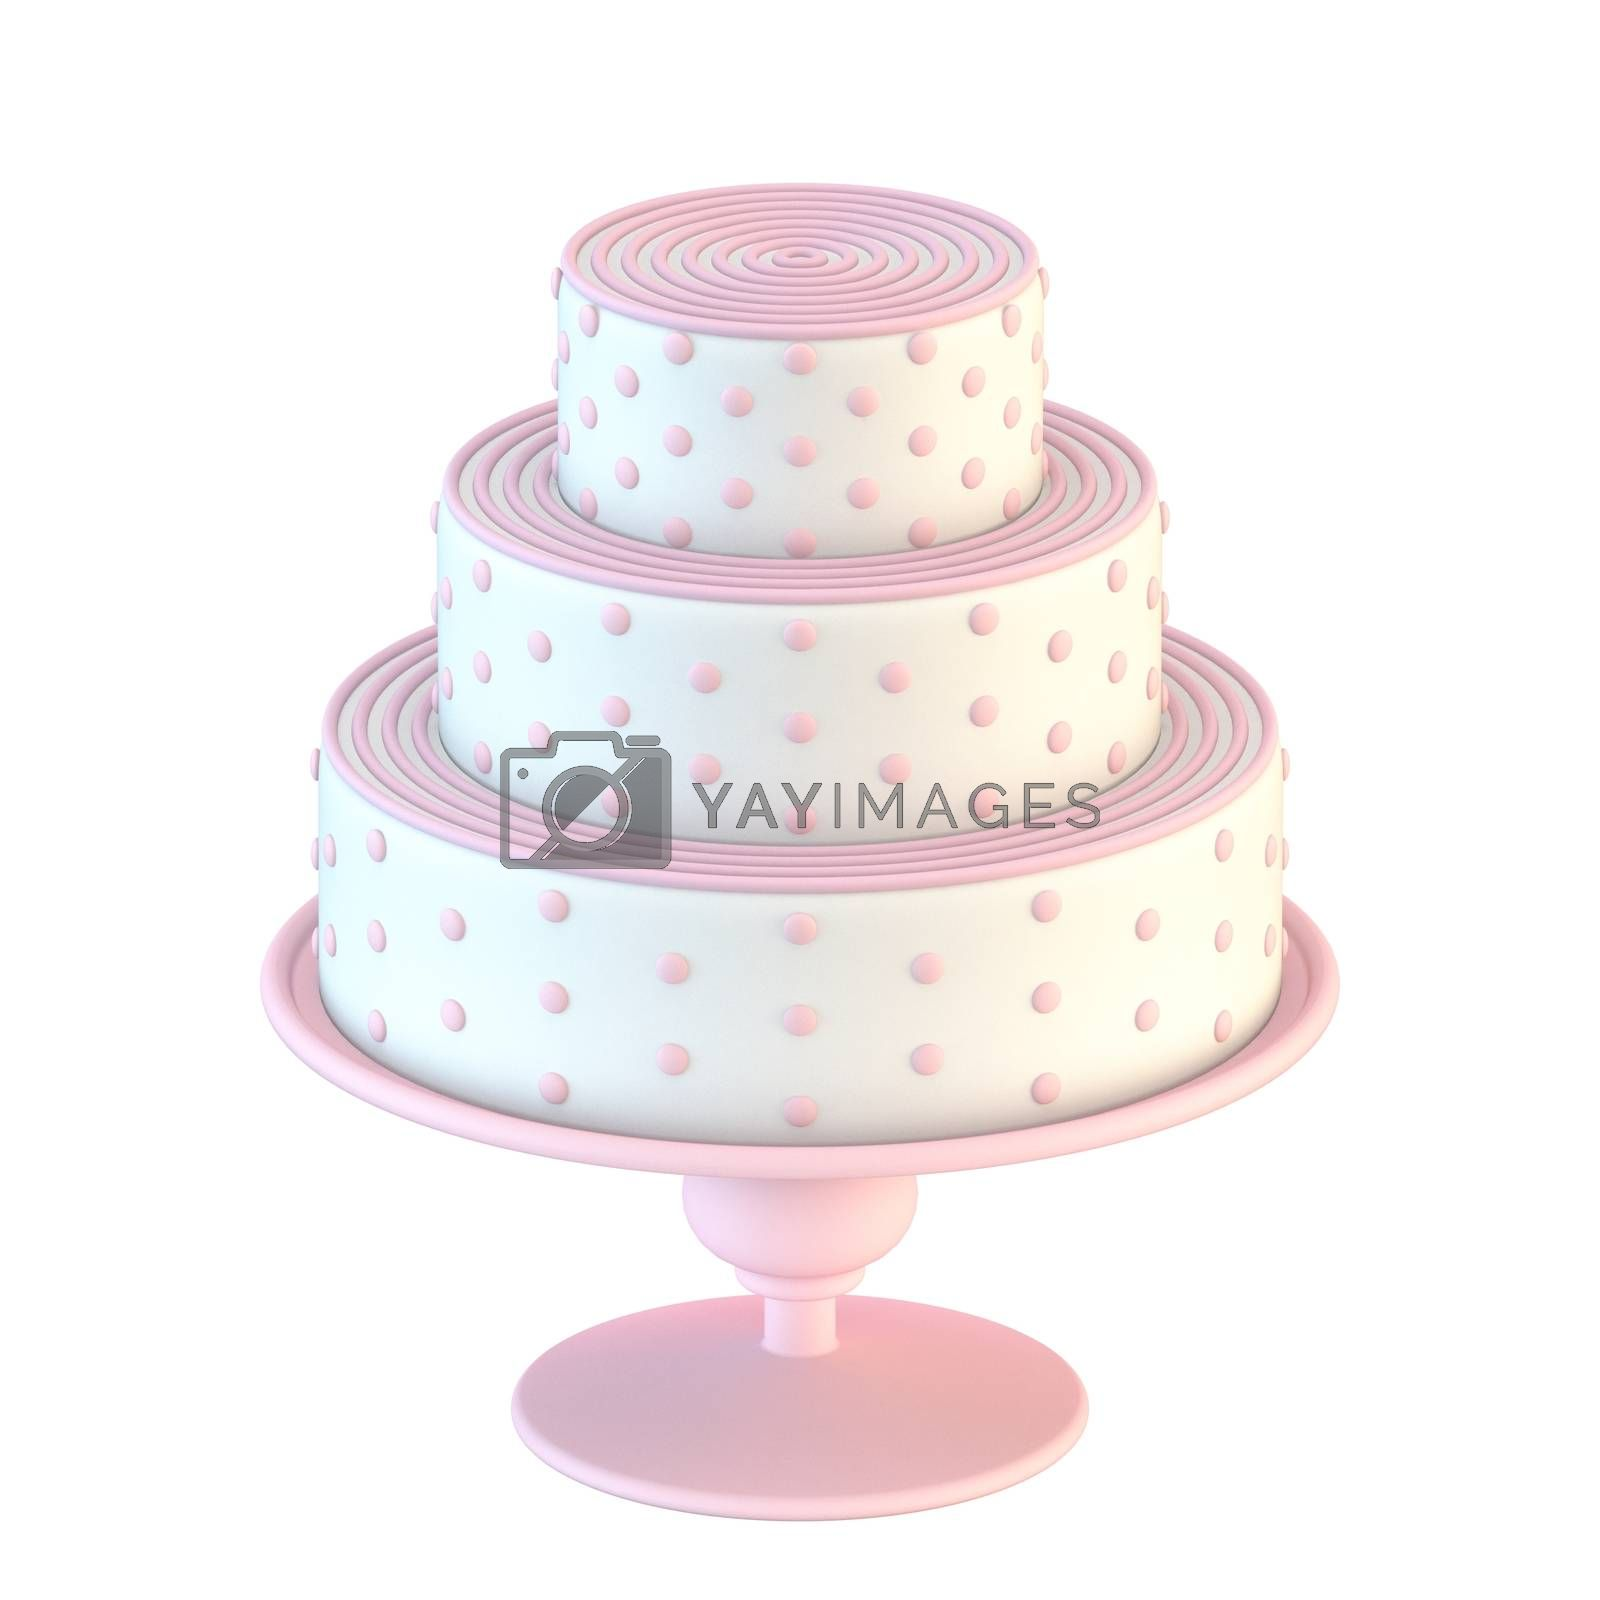 Pink white cake with dots 3D render illustration isolated on white background